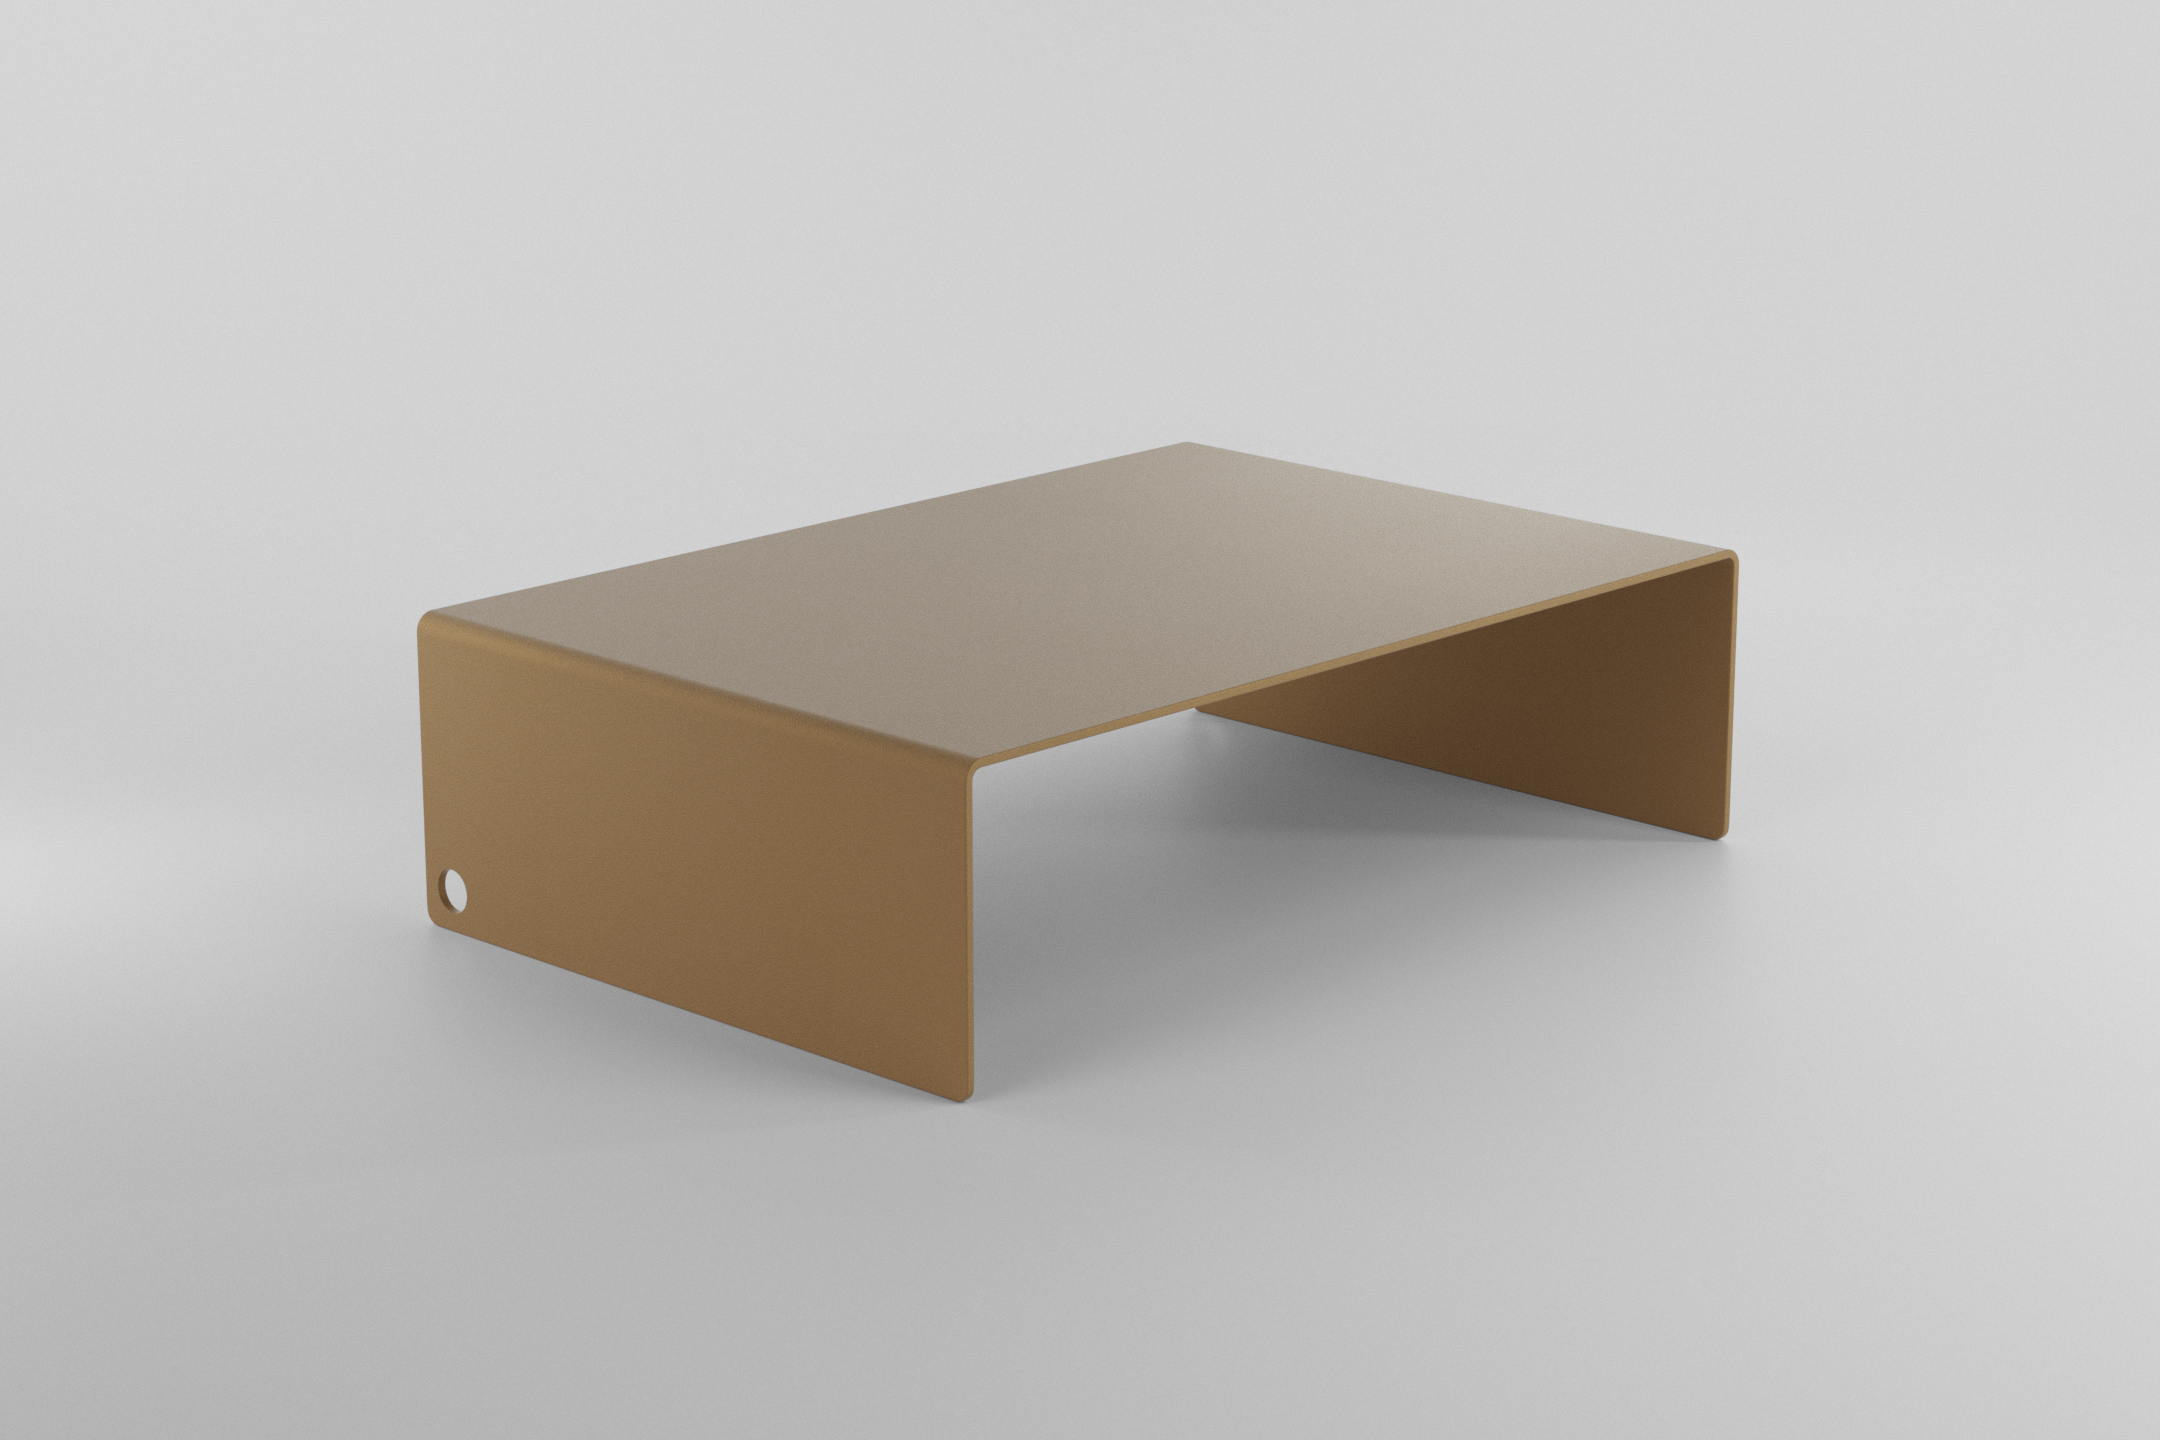 The Monitor Stand - Brown beige